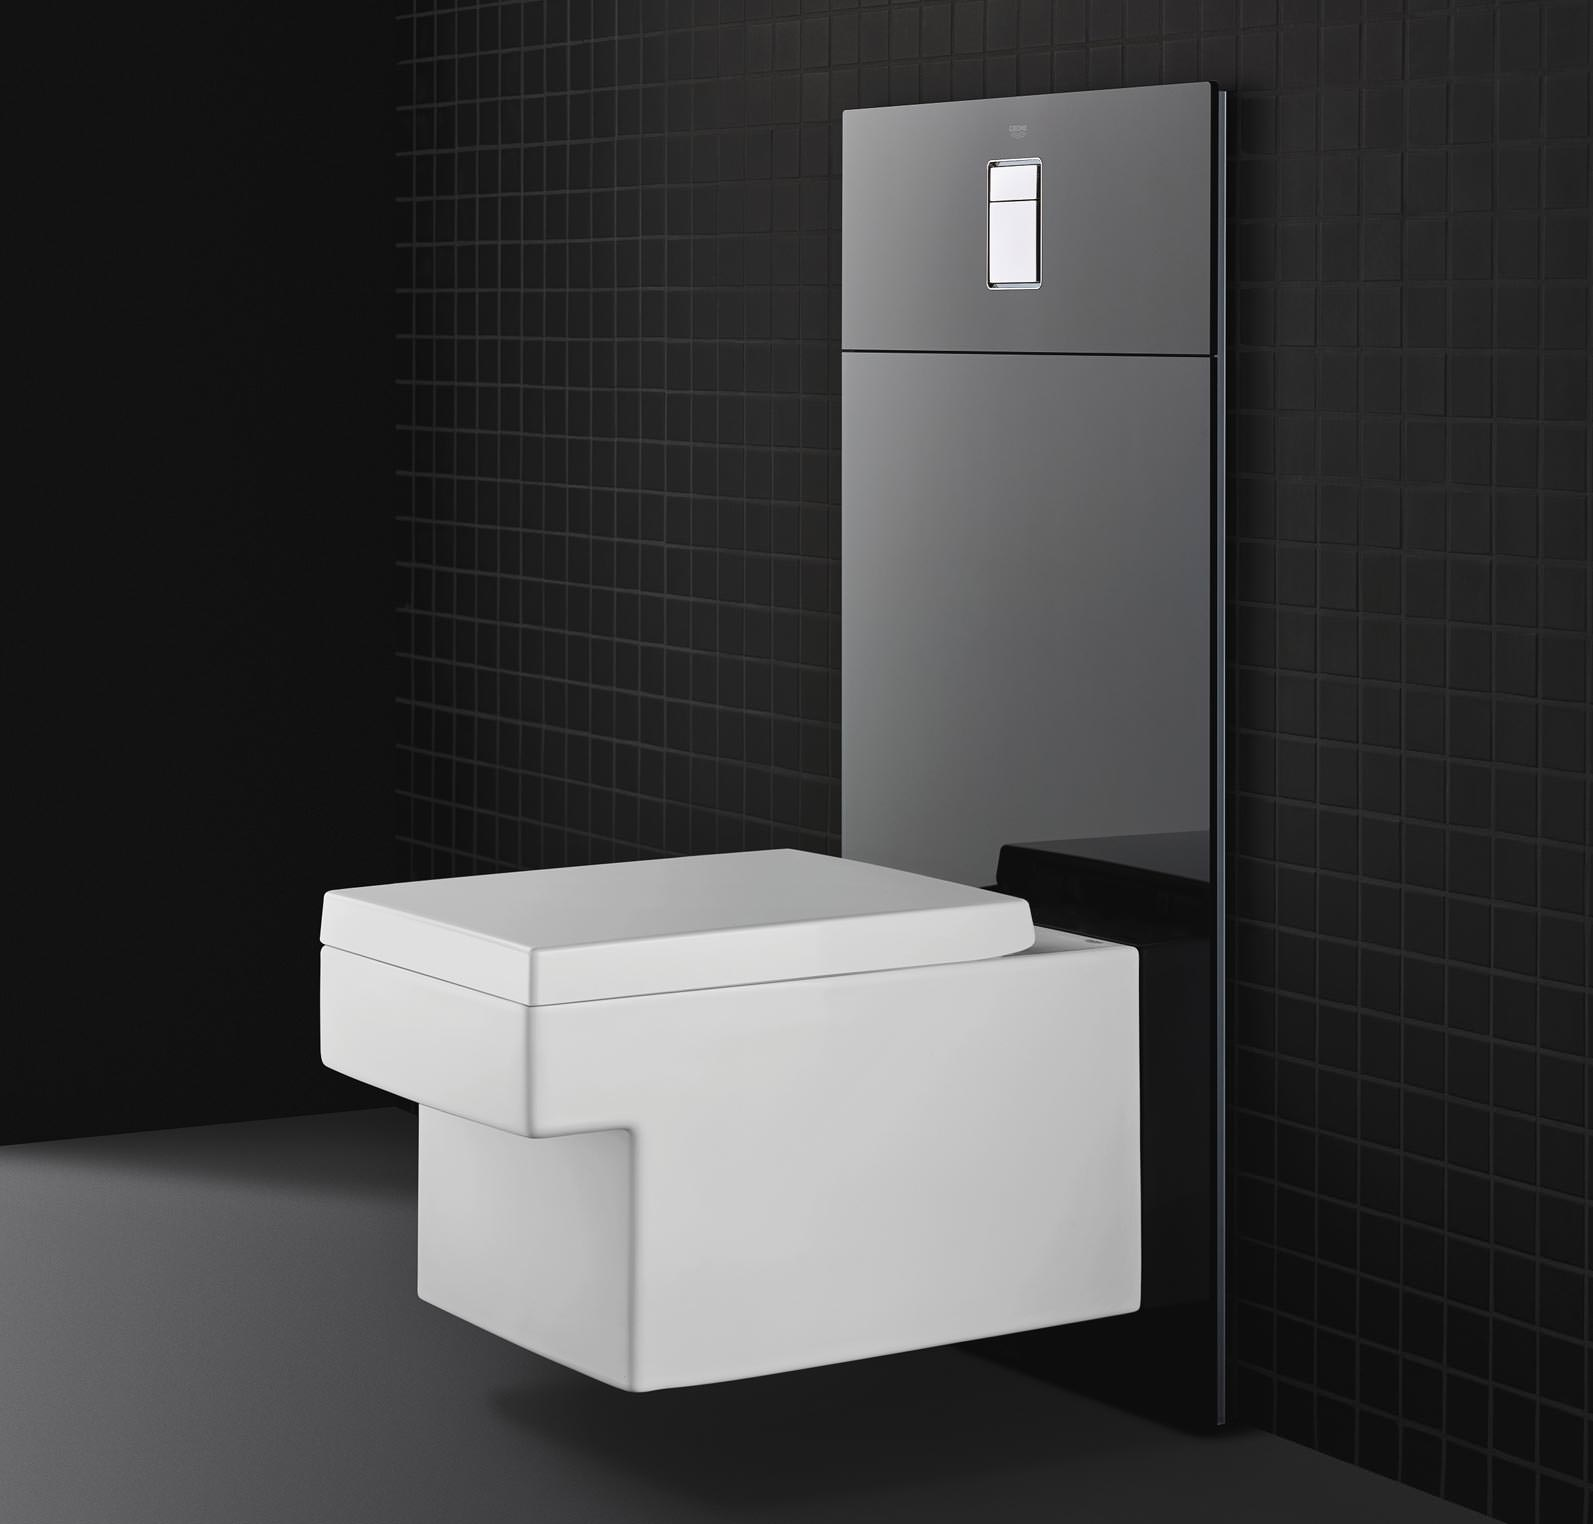 bau euro cube grohe eigene keramiken f r grohe eigene. Black Bedroom Furniture Sets. Home Design Ideas